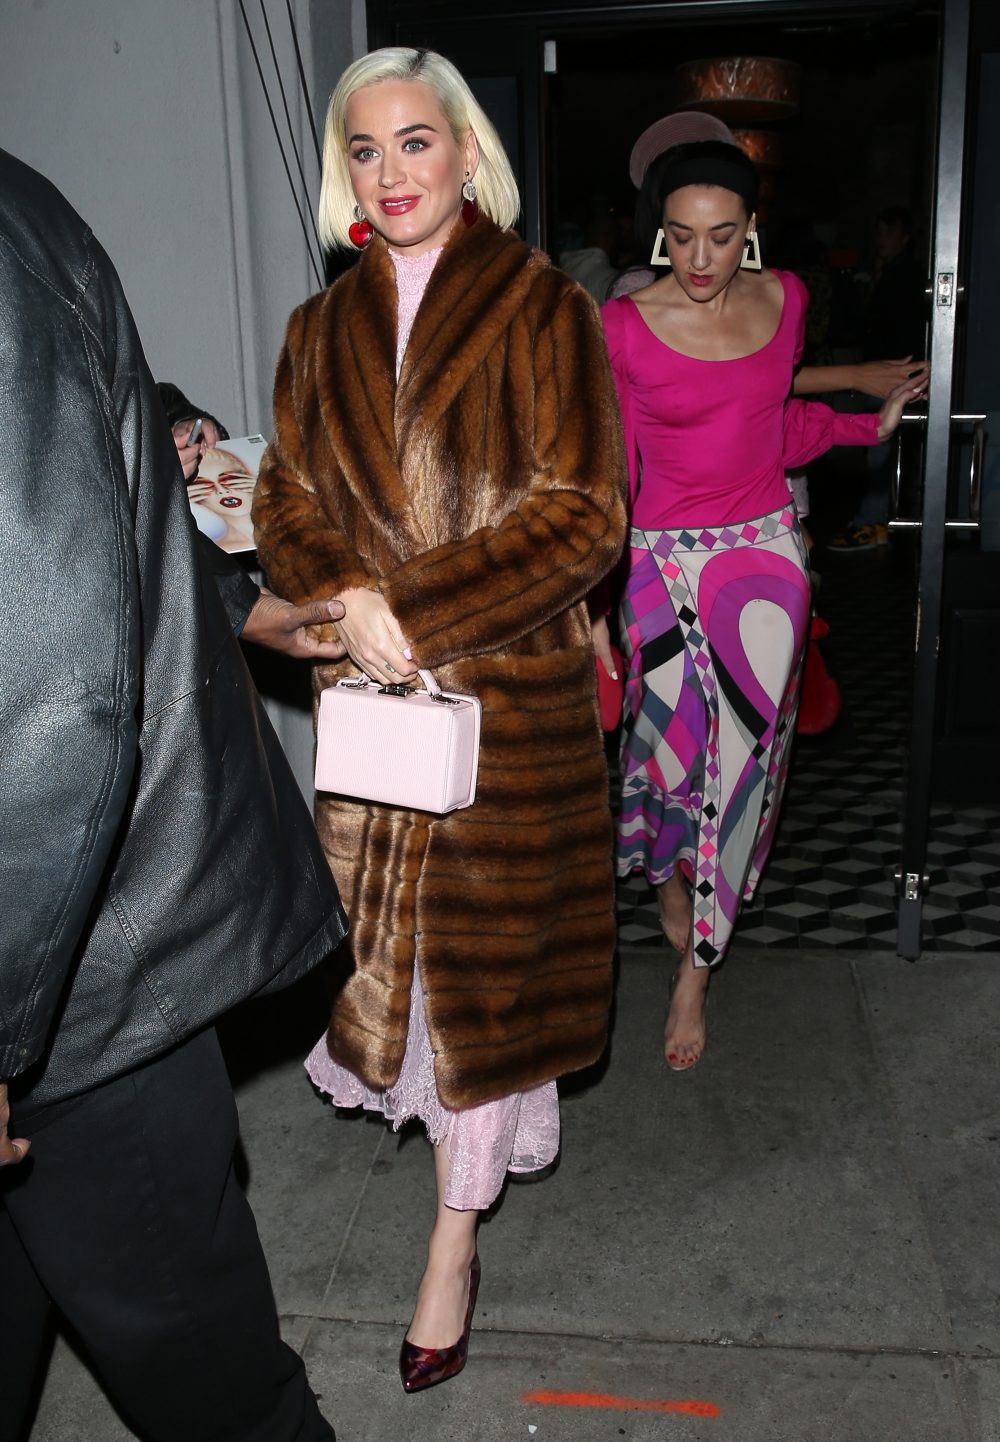 Katy Perry spends her Valentine's day with girlfriends at 'Craigs' Restaurant in West Hollywood, CA